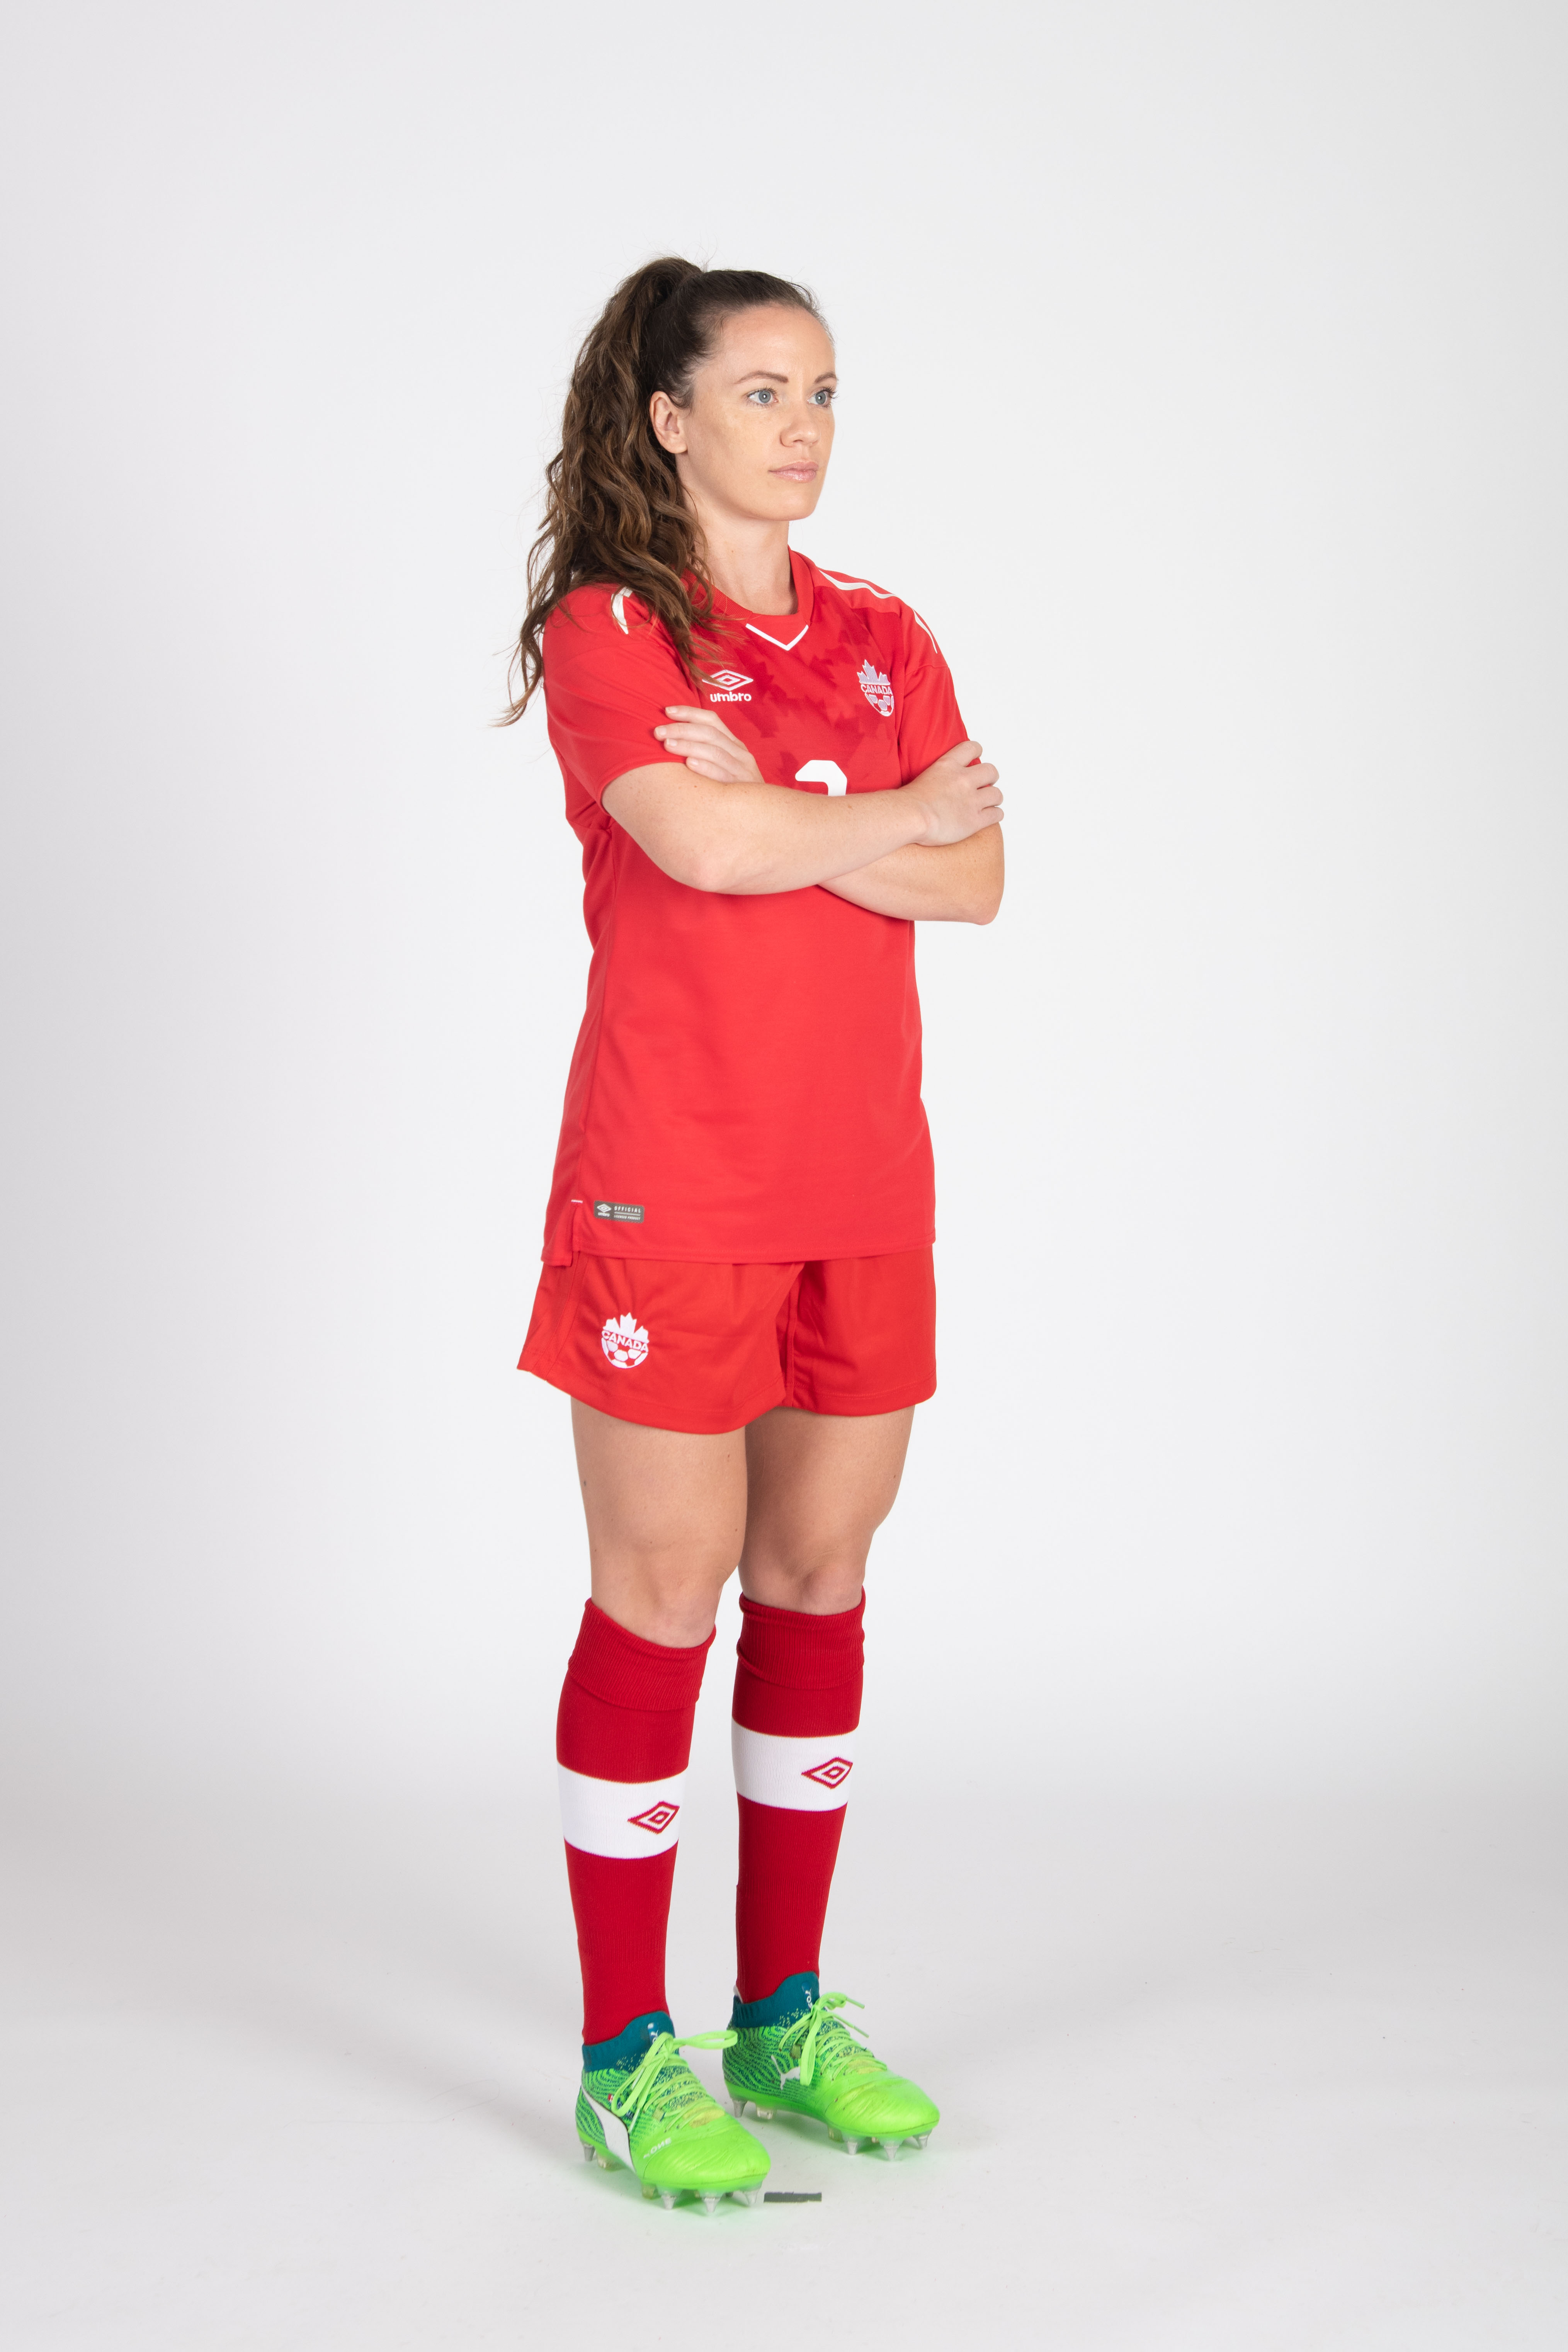 20180604_CANWNT_Chapman_byBazyl12